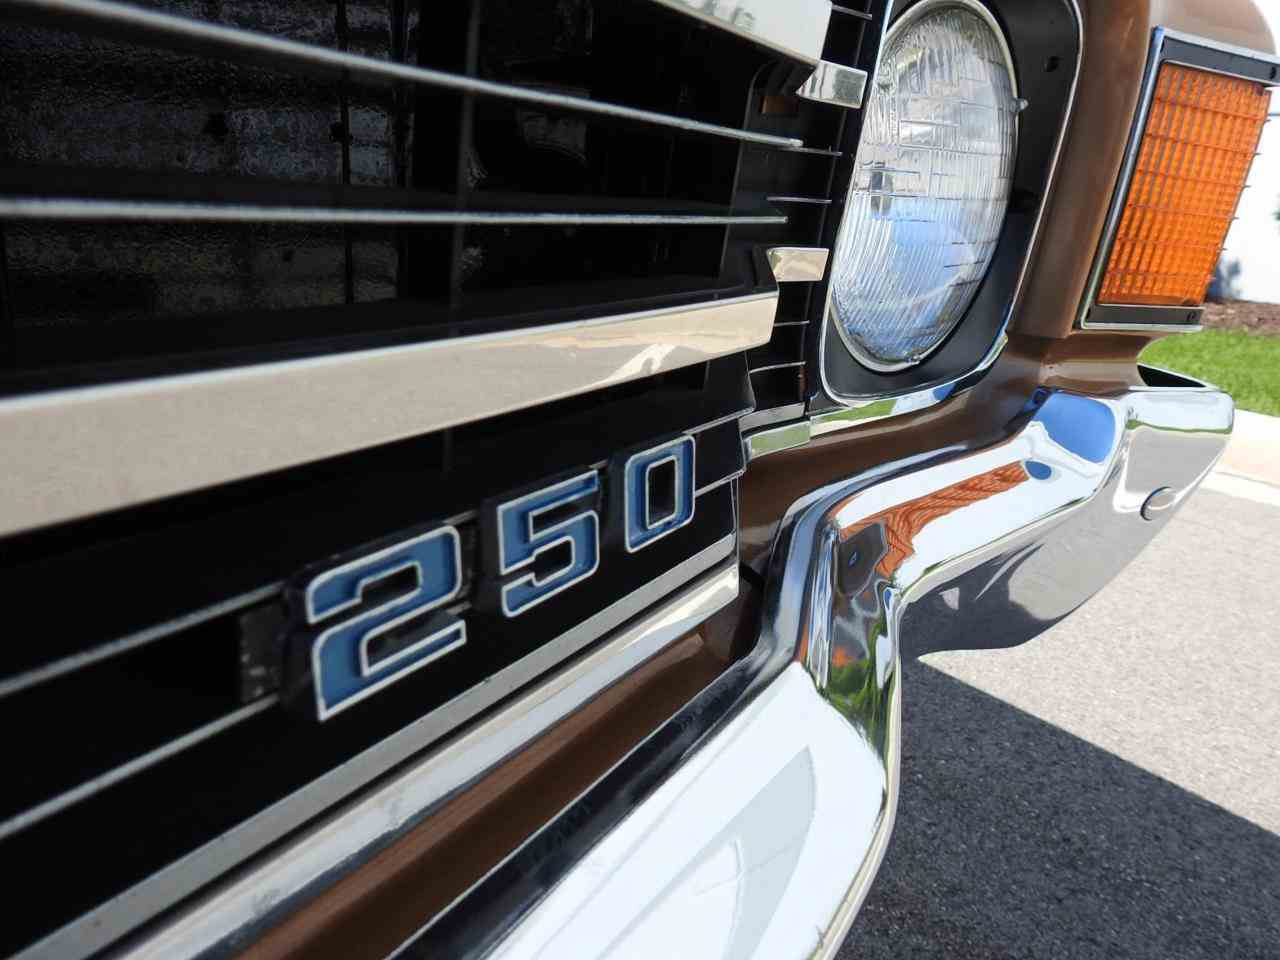 Large Picture of Classic '72 GMC Sprint located in Kenosha Wisconsin - $29,995.00 - L8EJ